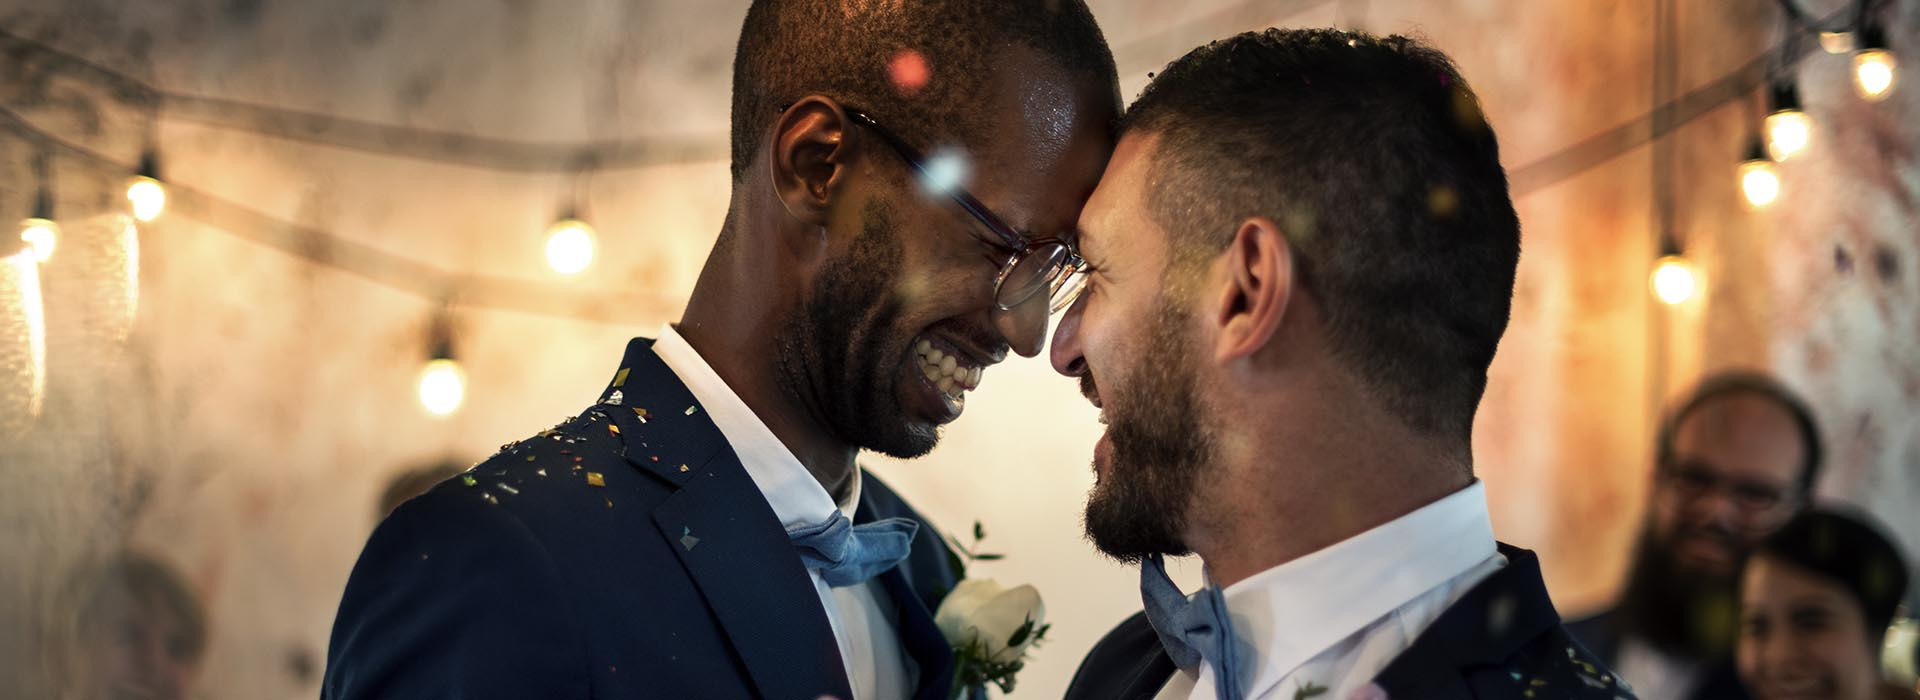 _0002_shutterstock gay couple